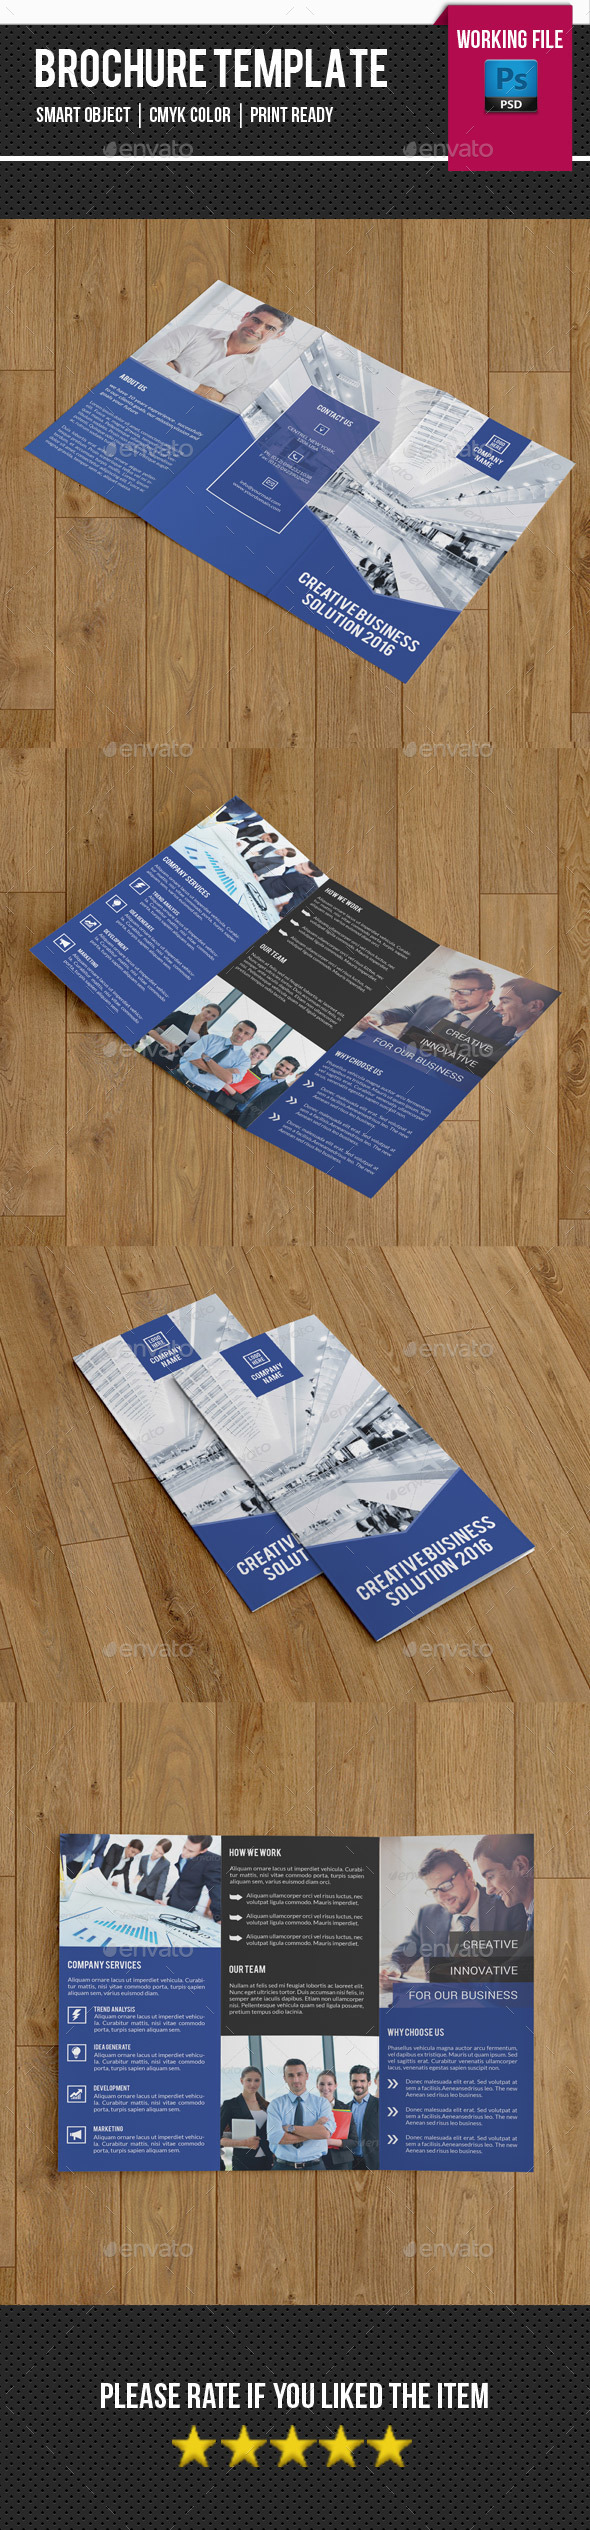 Corporate Trifold Brochure-V264 - Corporate Brochures